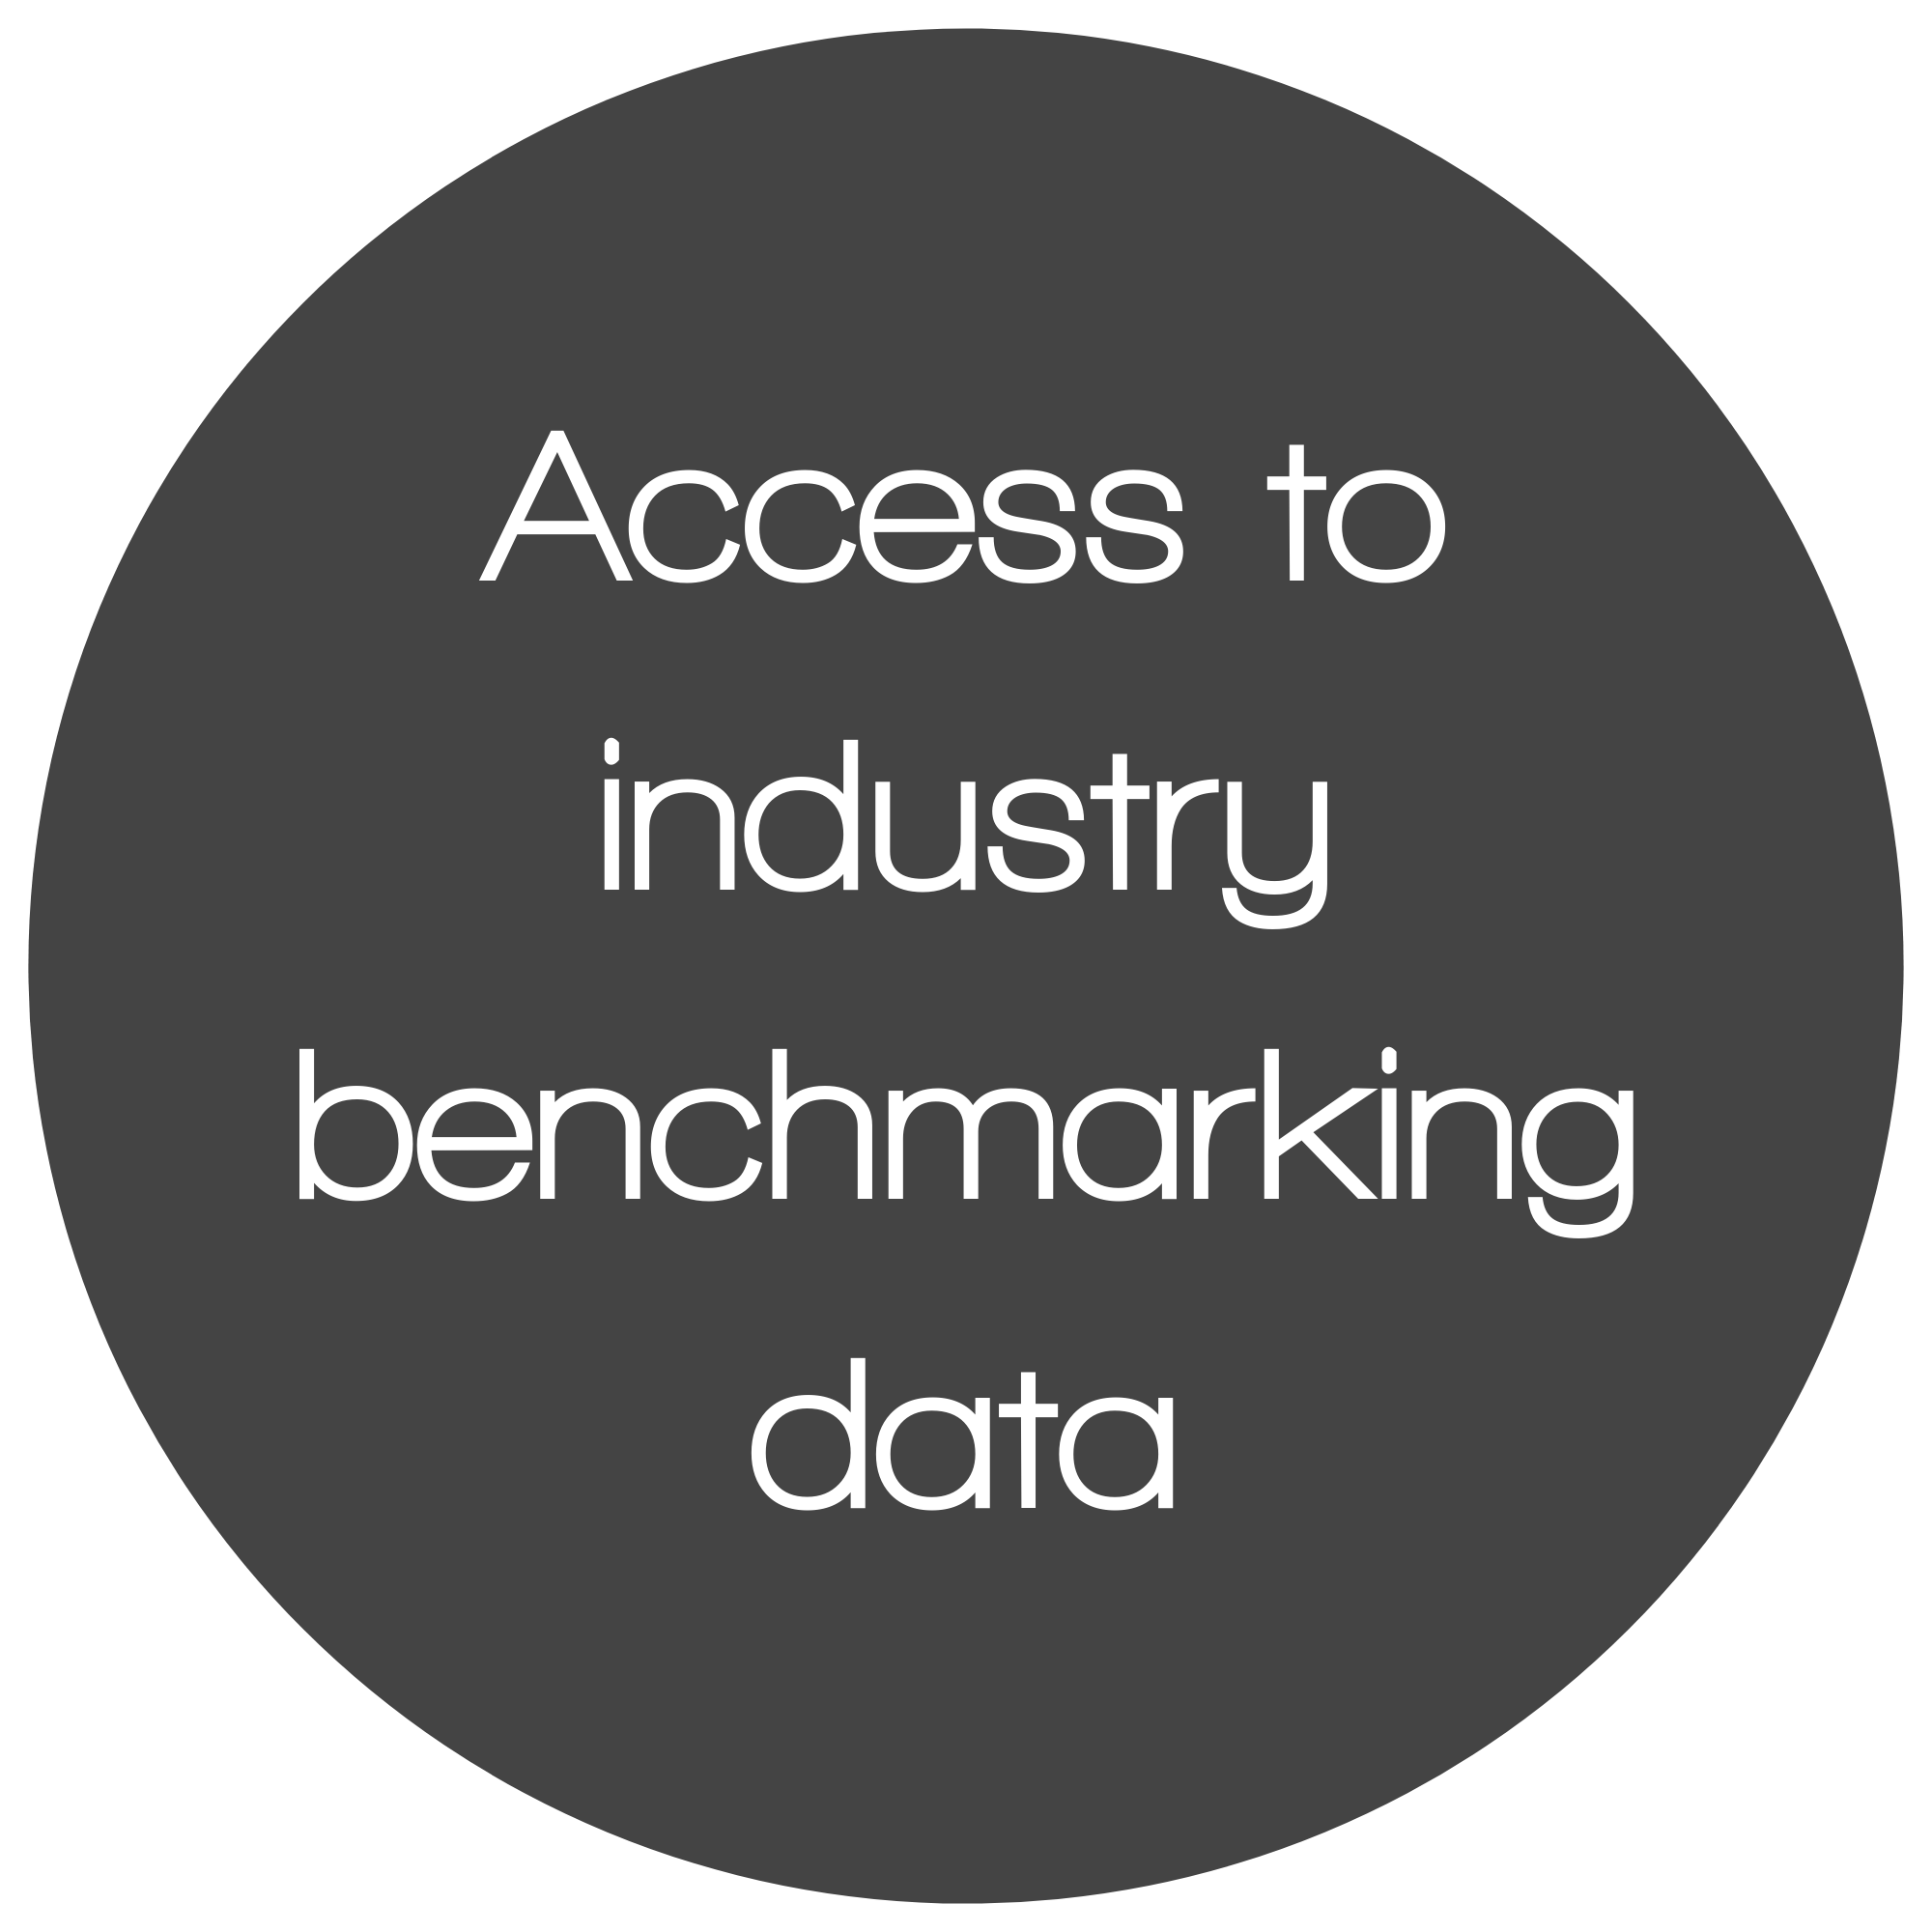 Access to industry benchmarking data